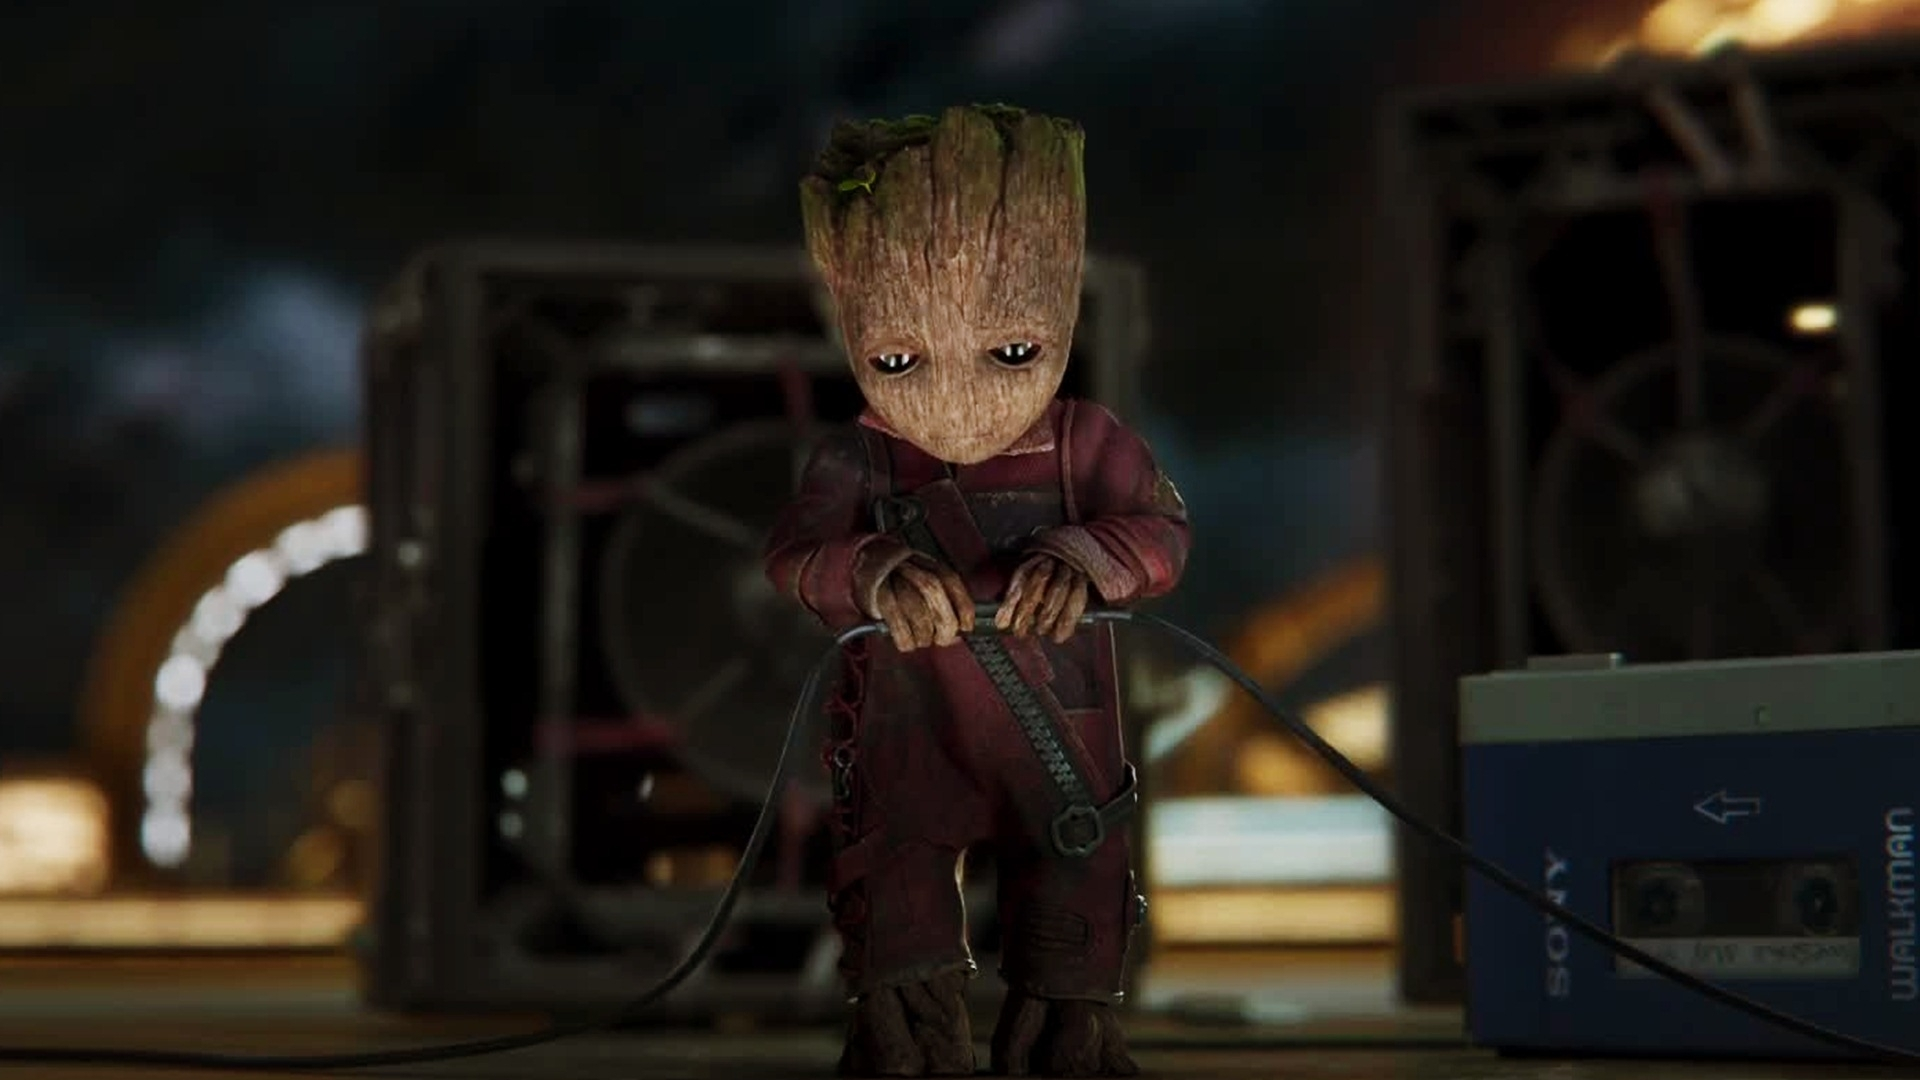 baby groot guardians of the galaxy vol. 2 hd wallpaper 13719 - baltana